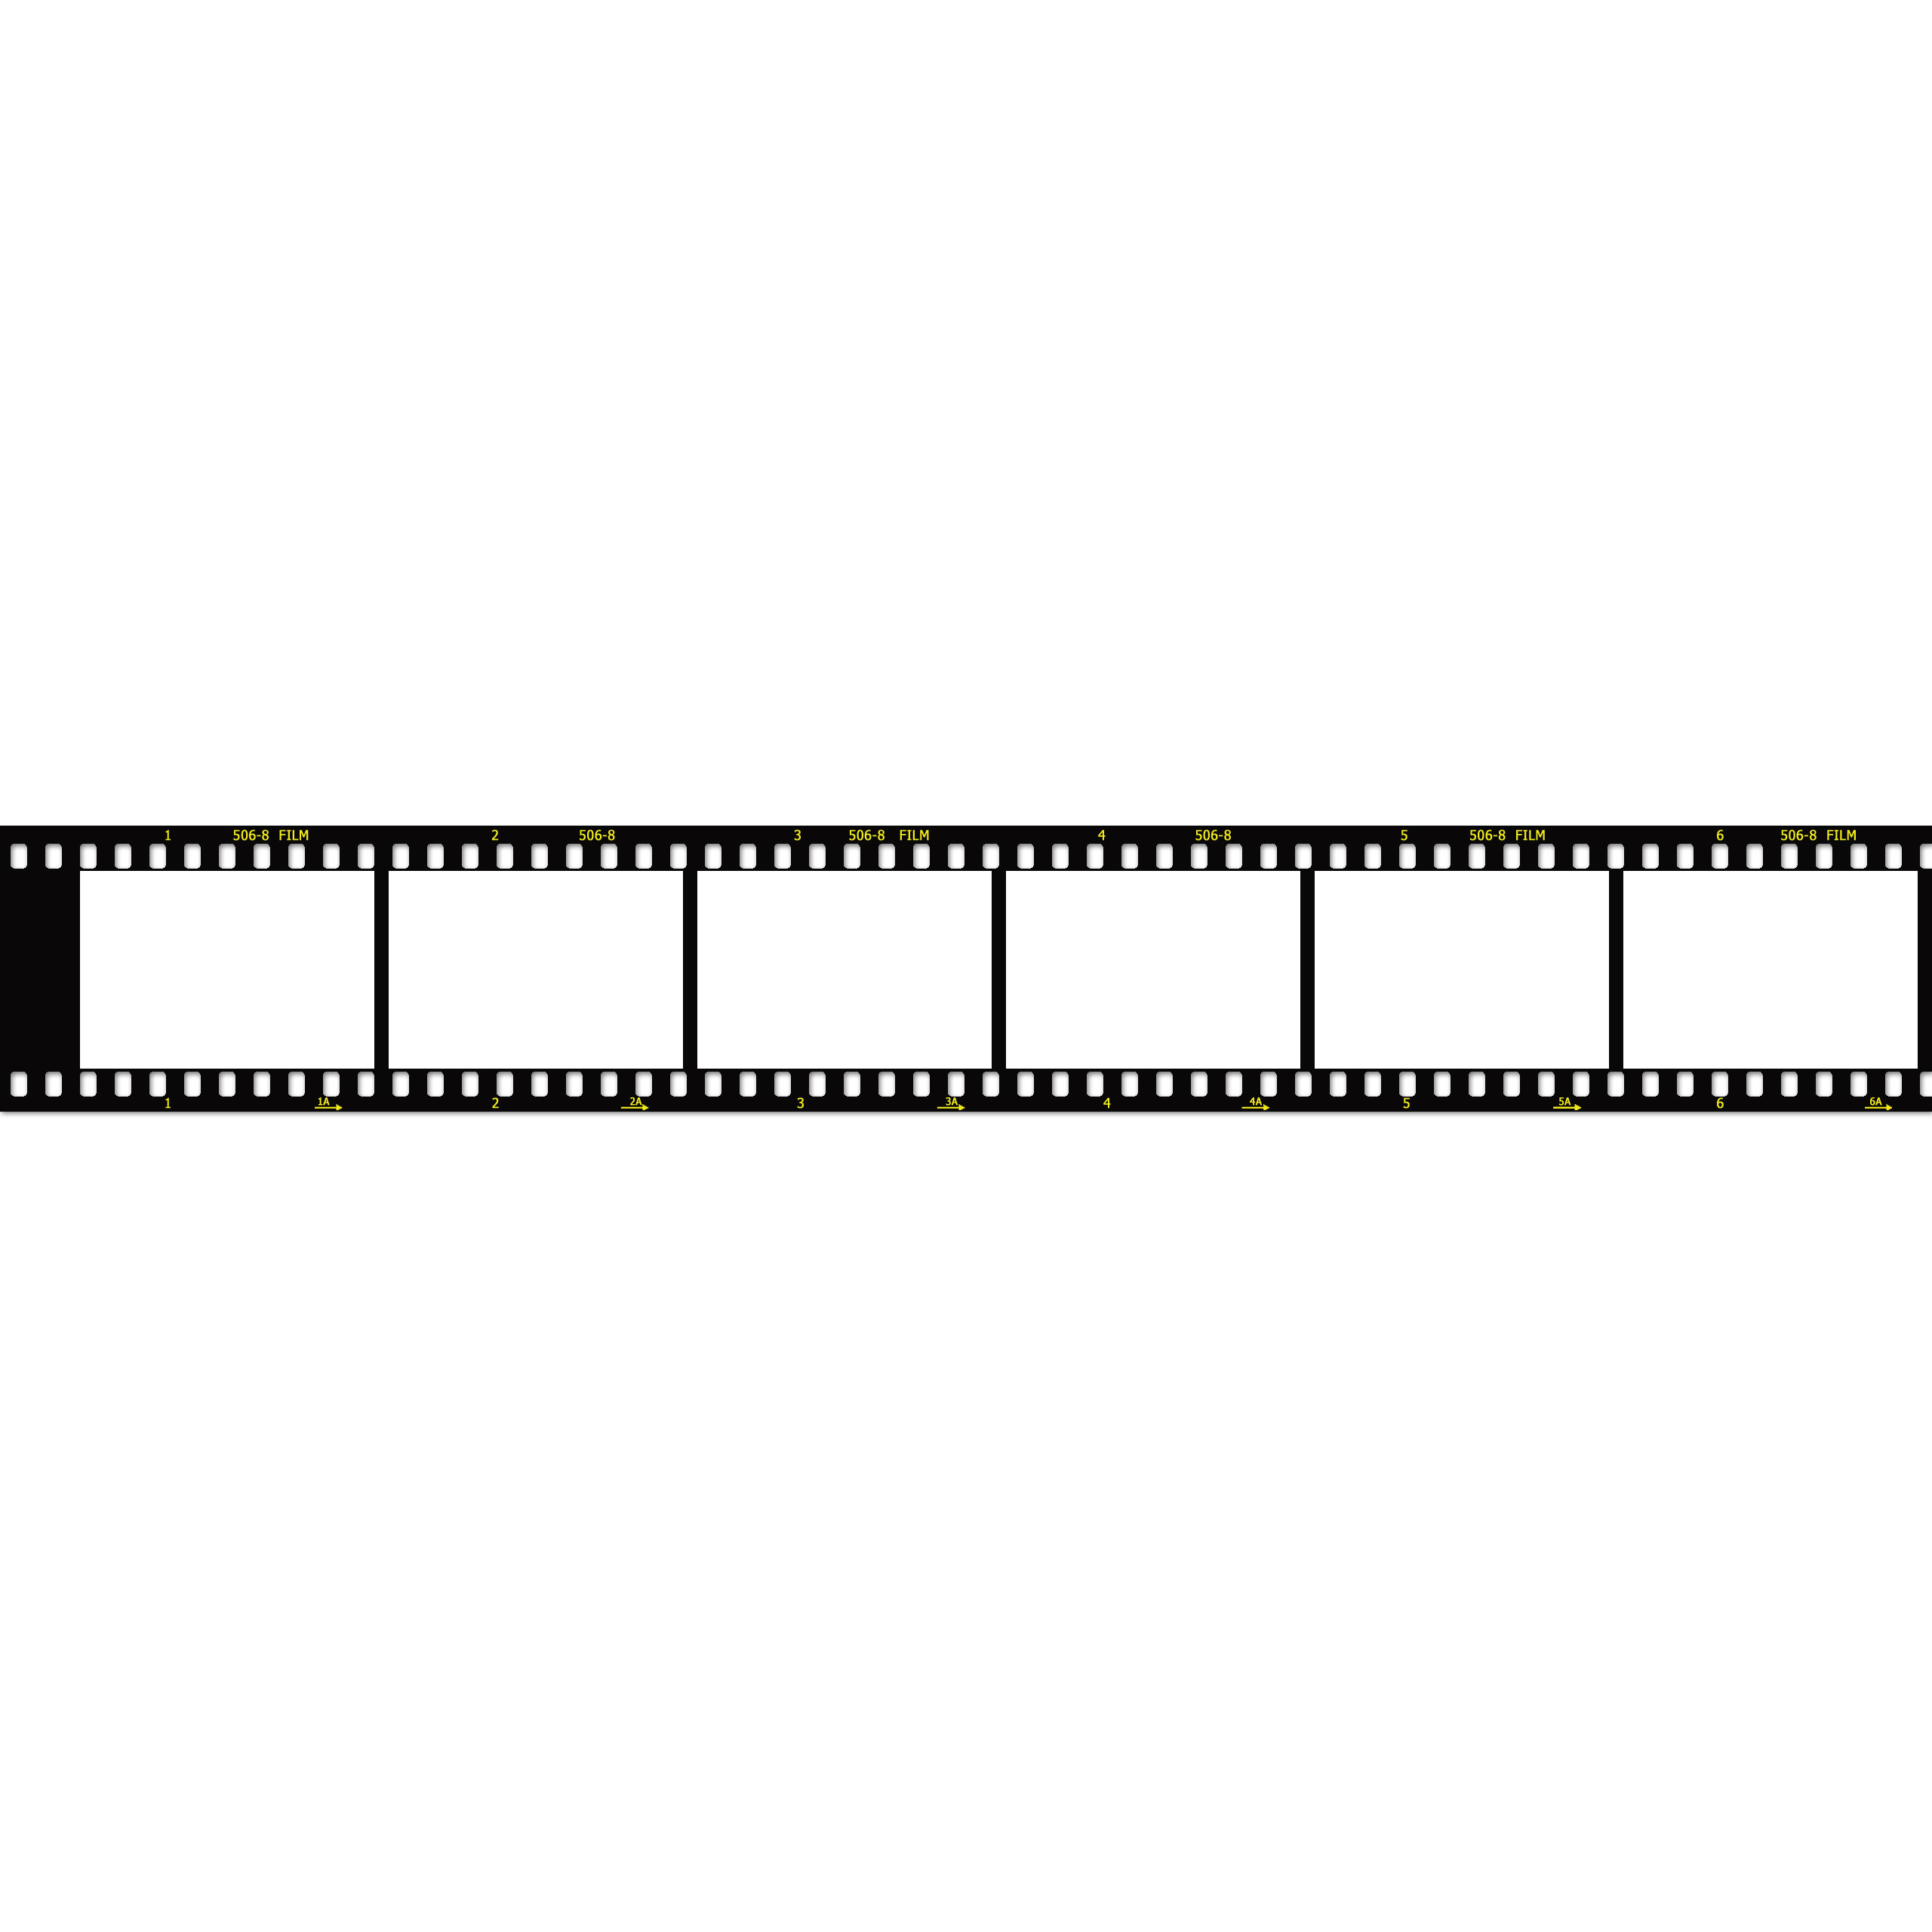 2560x2560 Film Strip Image Template (2560px Wide)